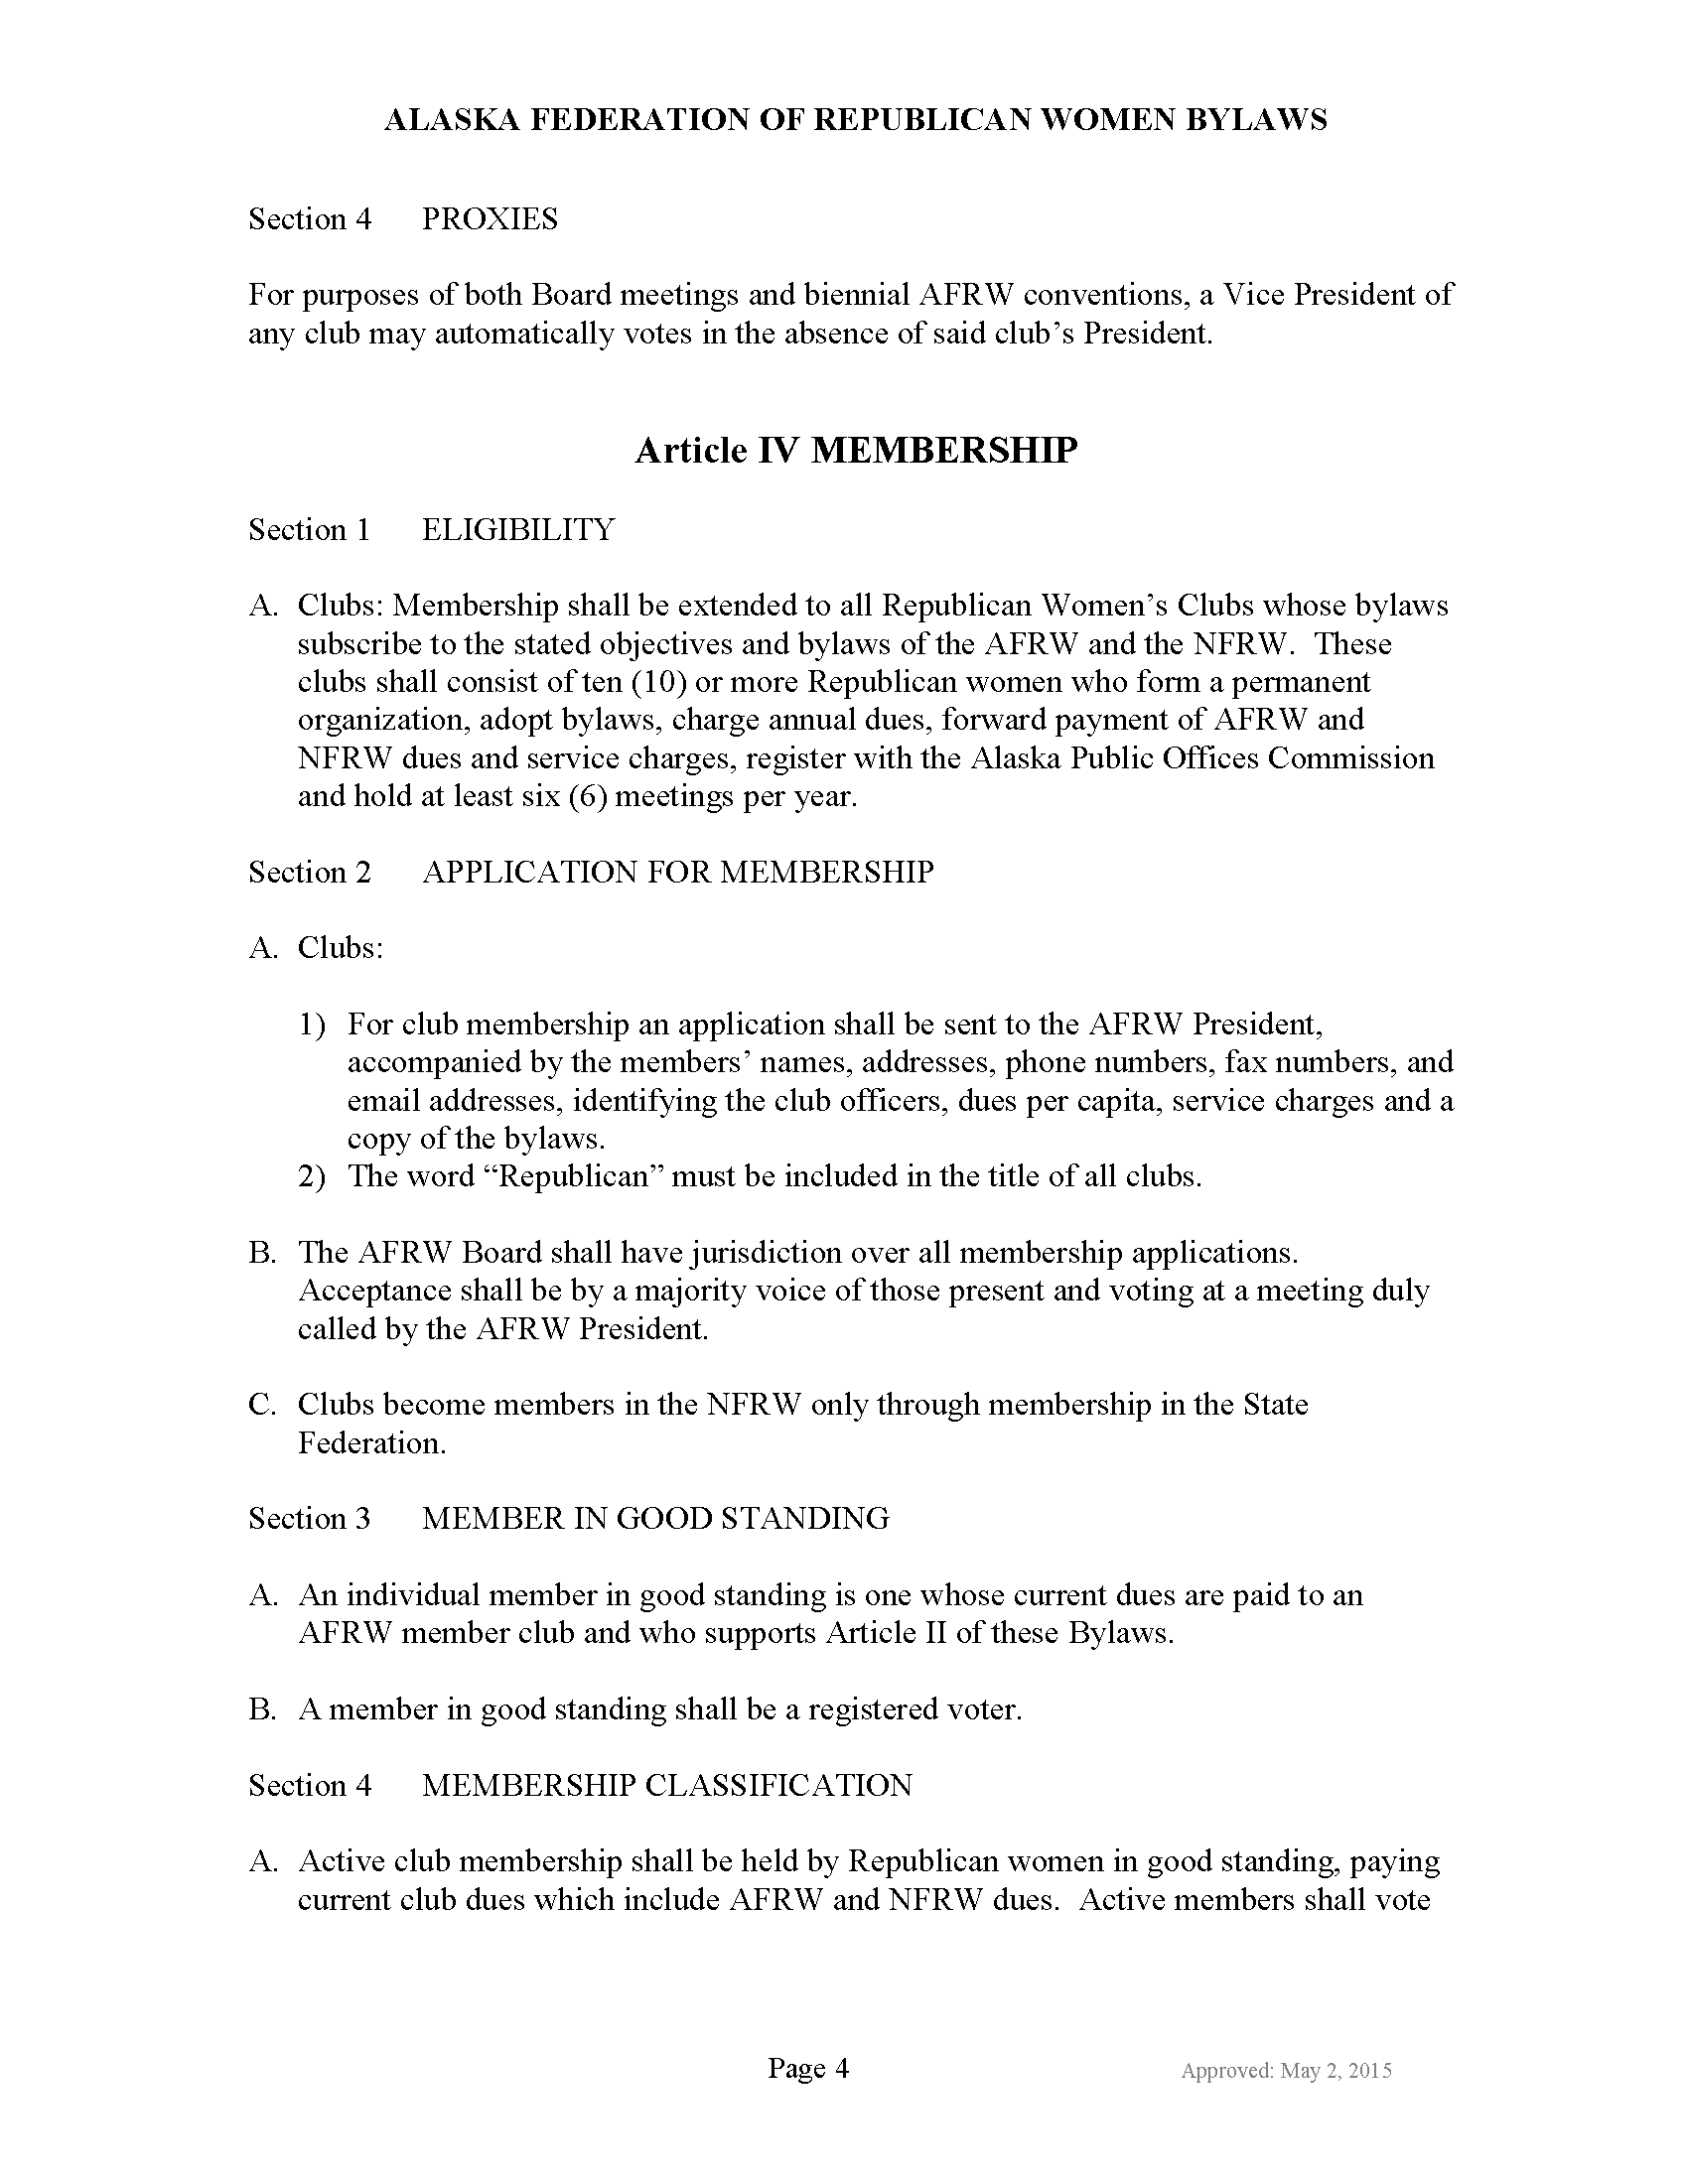 AFRW_Bylaws_ARWC_Approved_May_2__2015__(1)_Page_04.png